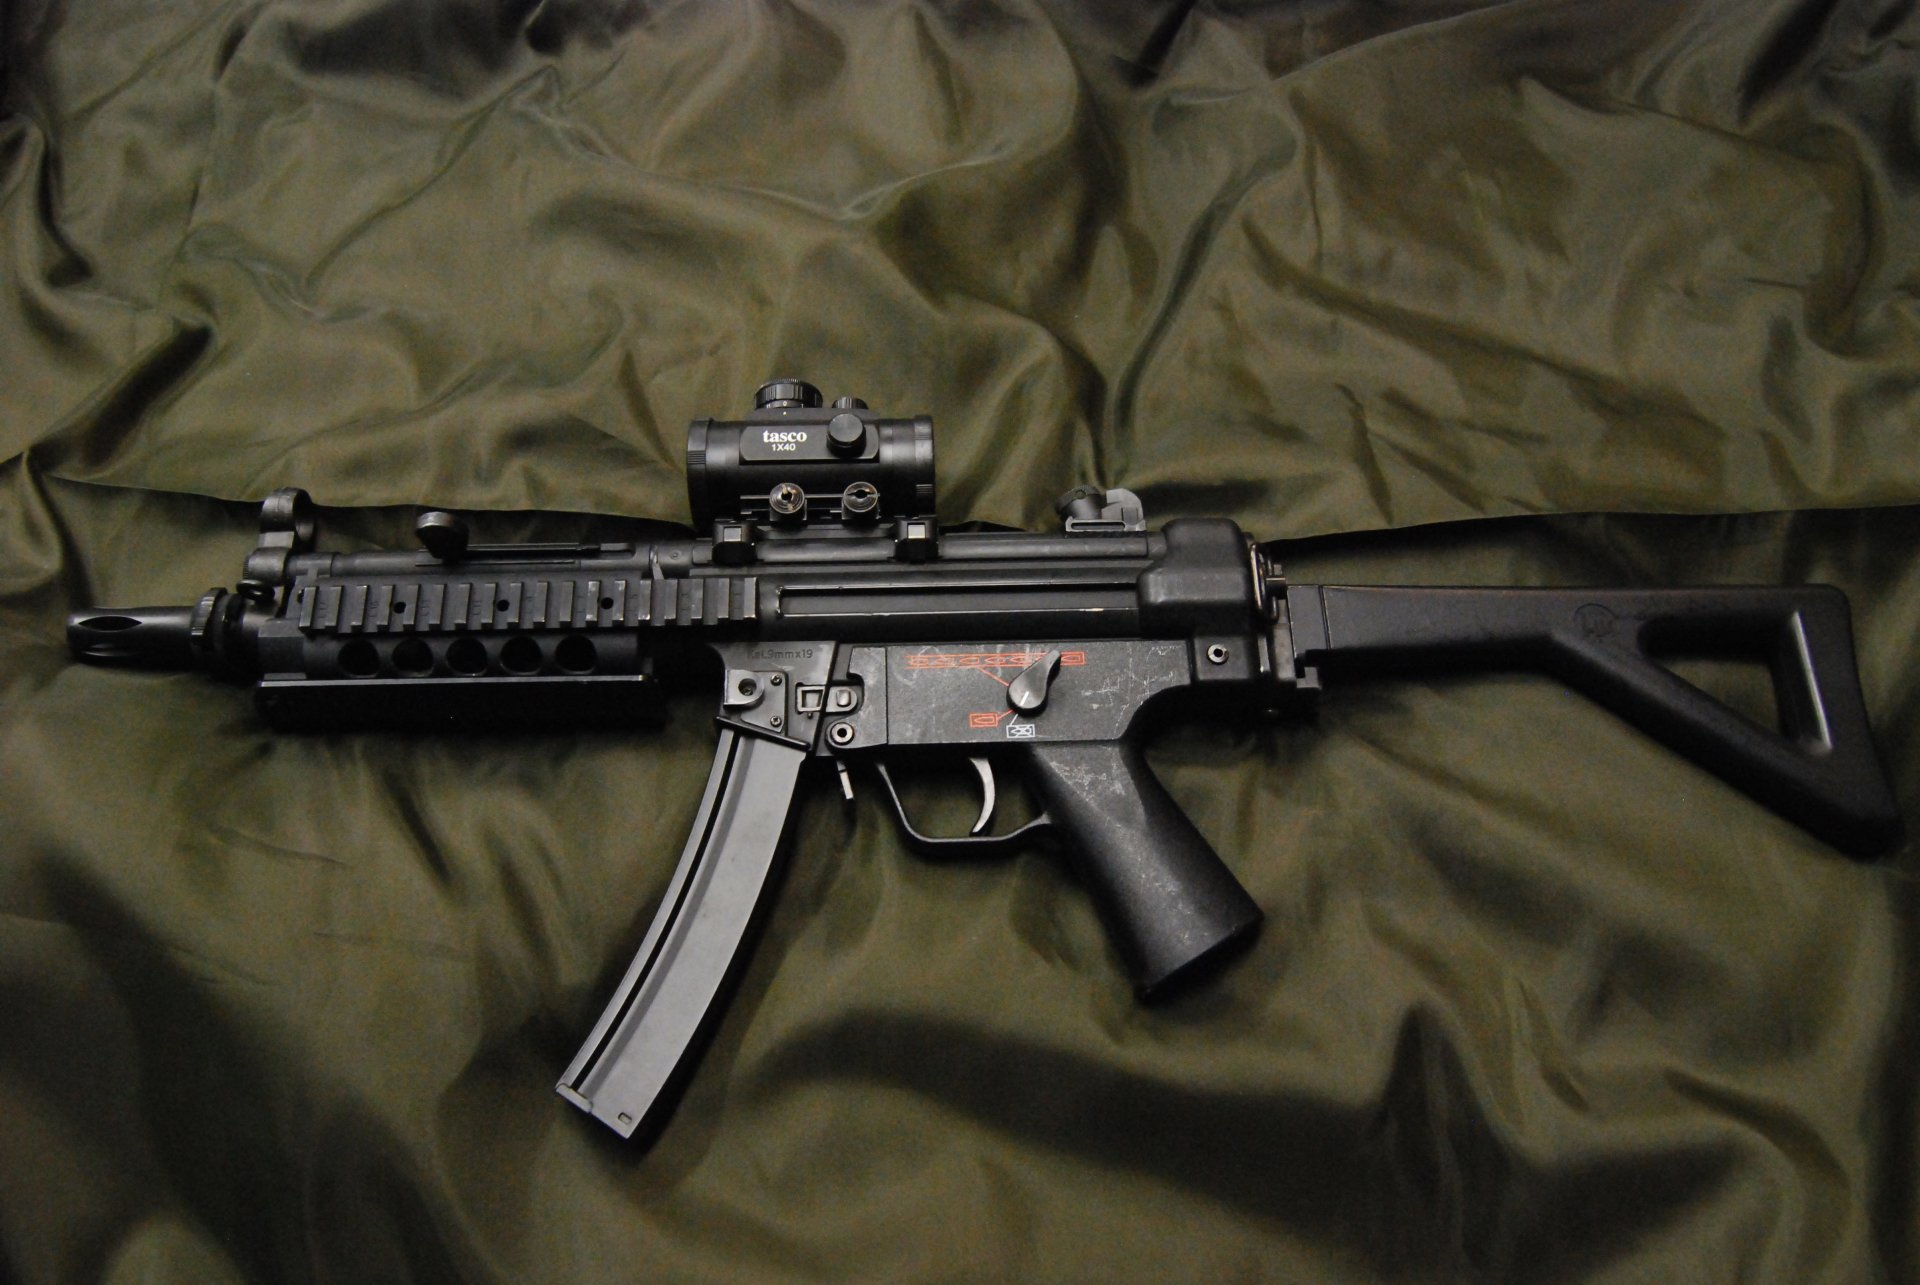 Special Forces Iphone Wallpaper Heckler Amp Koch Mp5 Rifle 4k Ultra Hd Wallpaper And